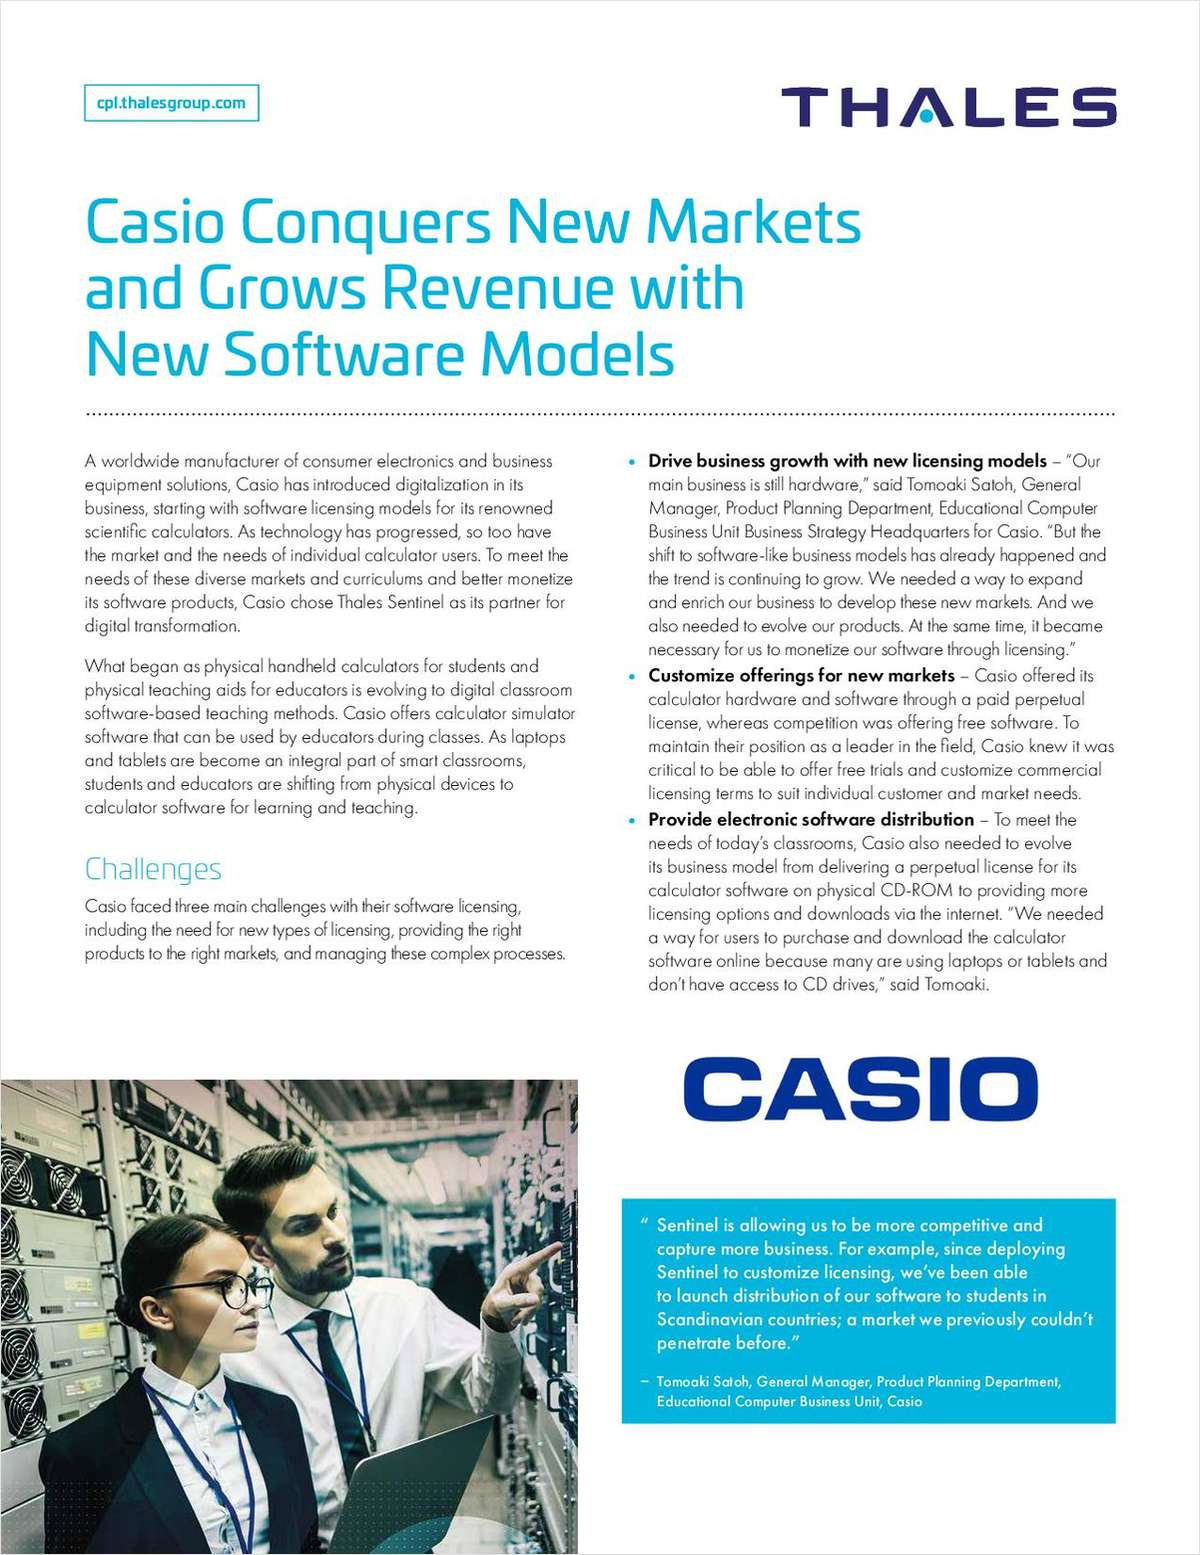 Case Study - Casio Conquers New Markets and Grows Revenue with New Software Models